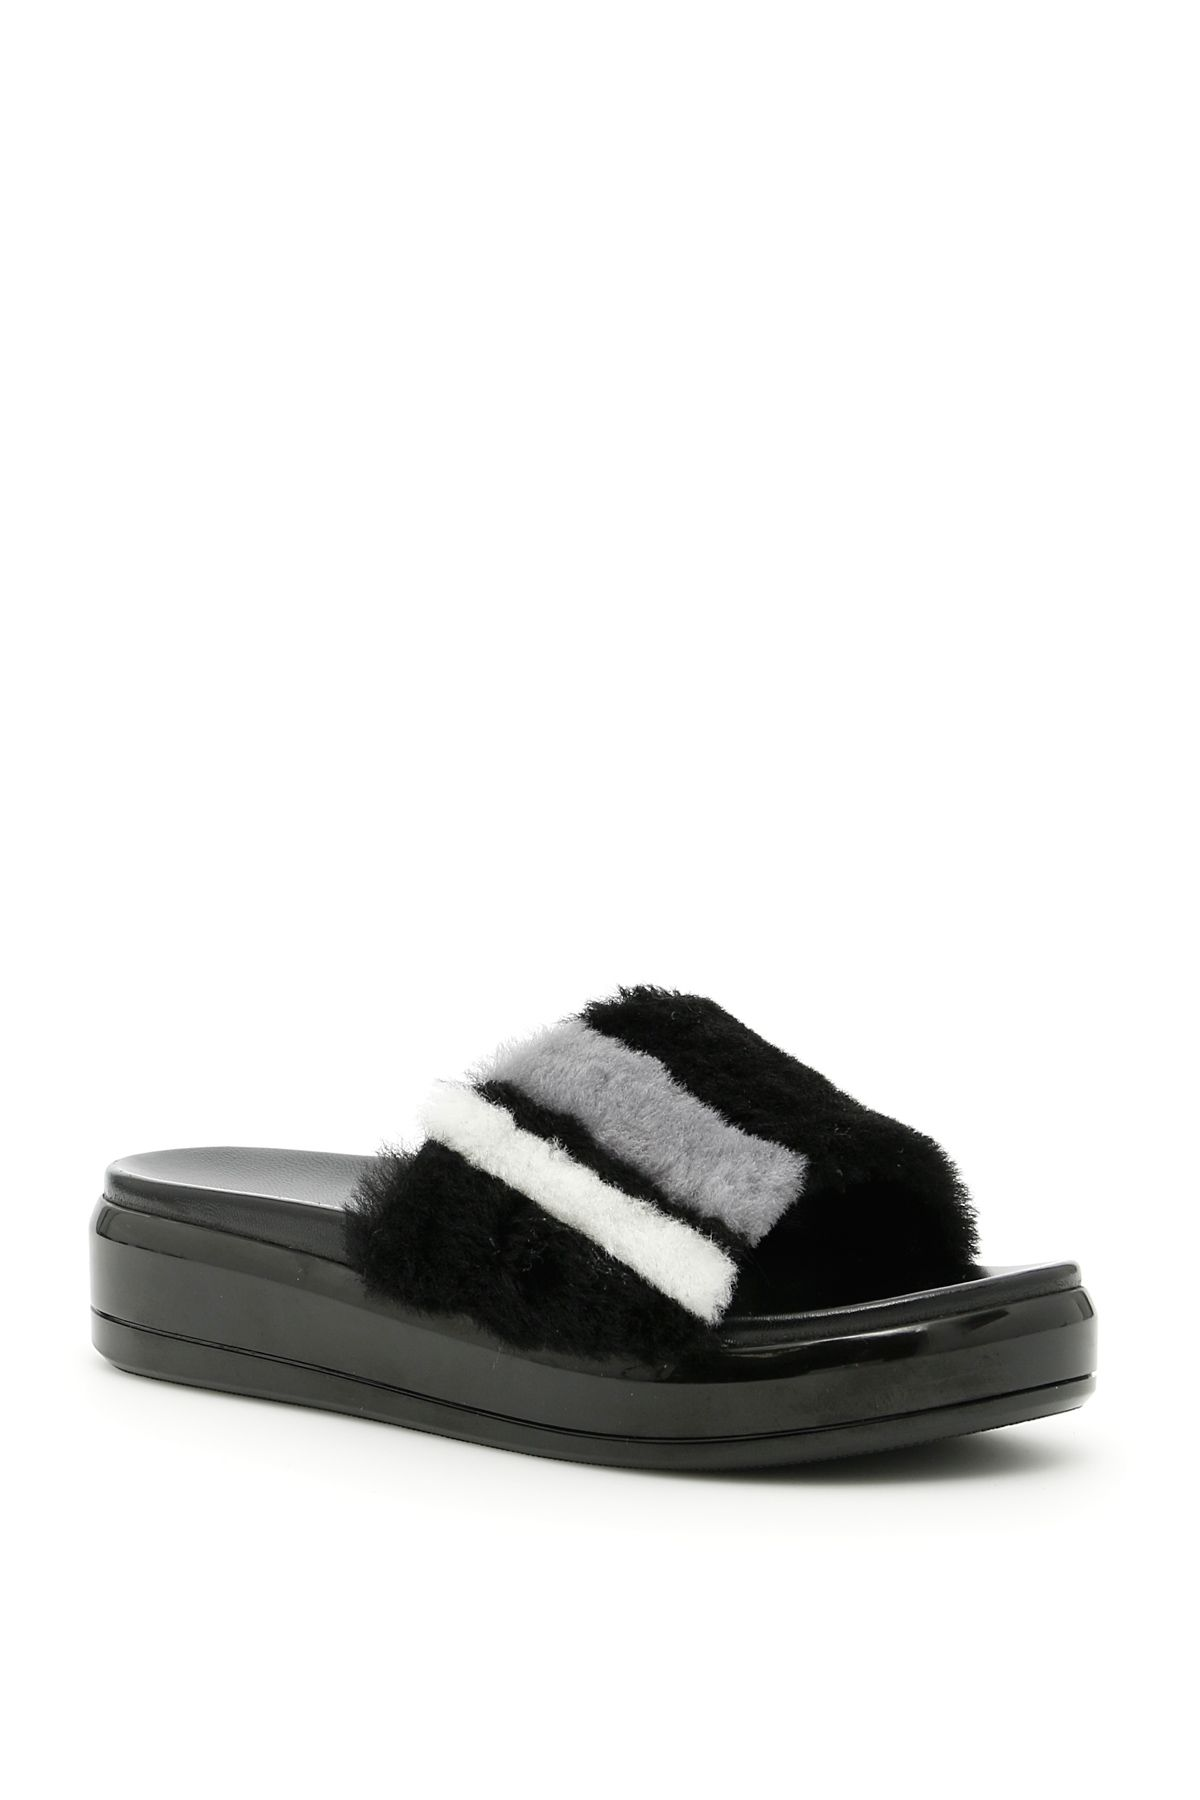 Prada Linea Rossa Sheepskin Sandals